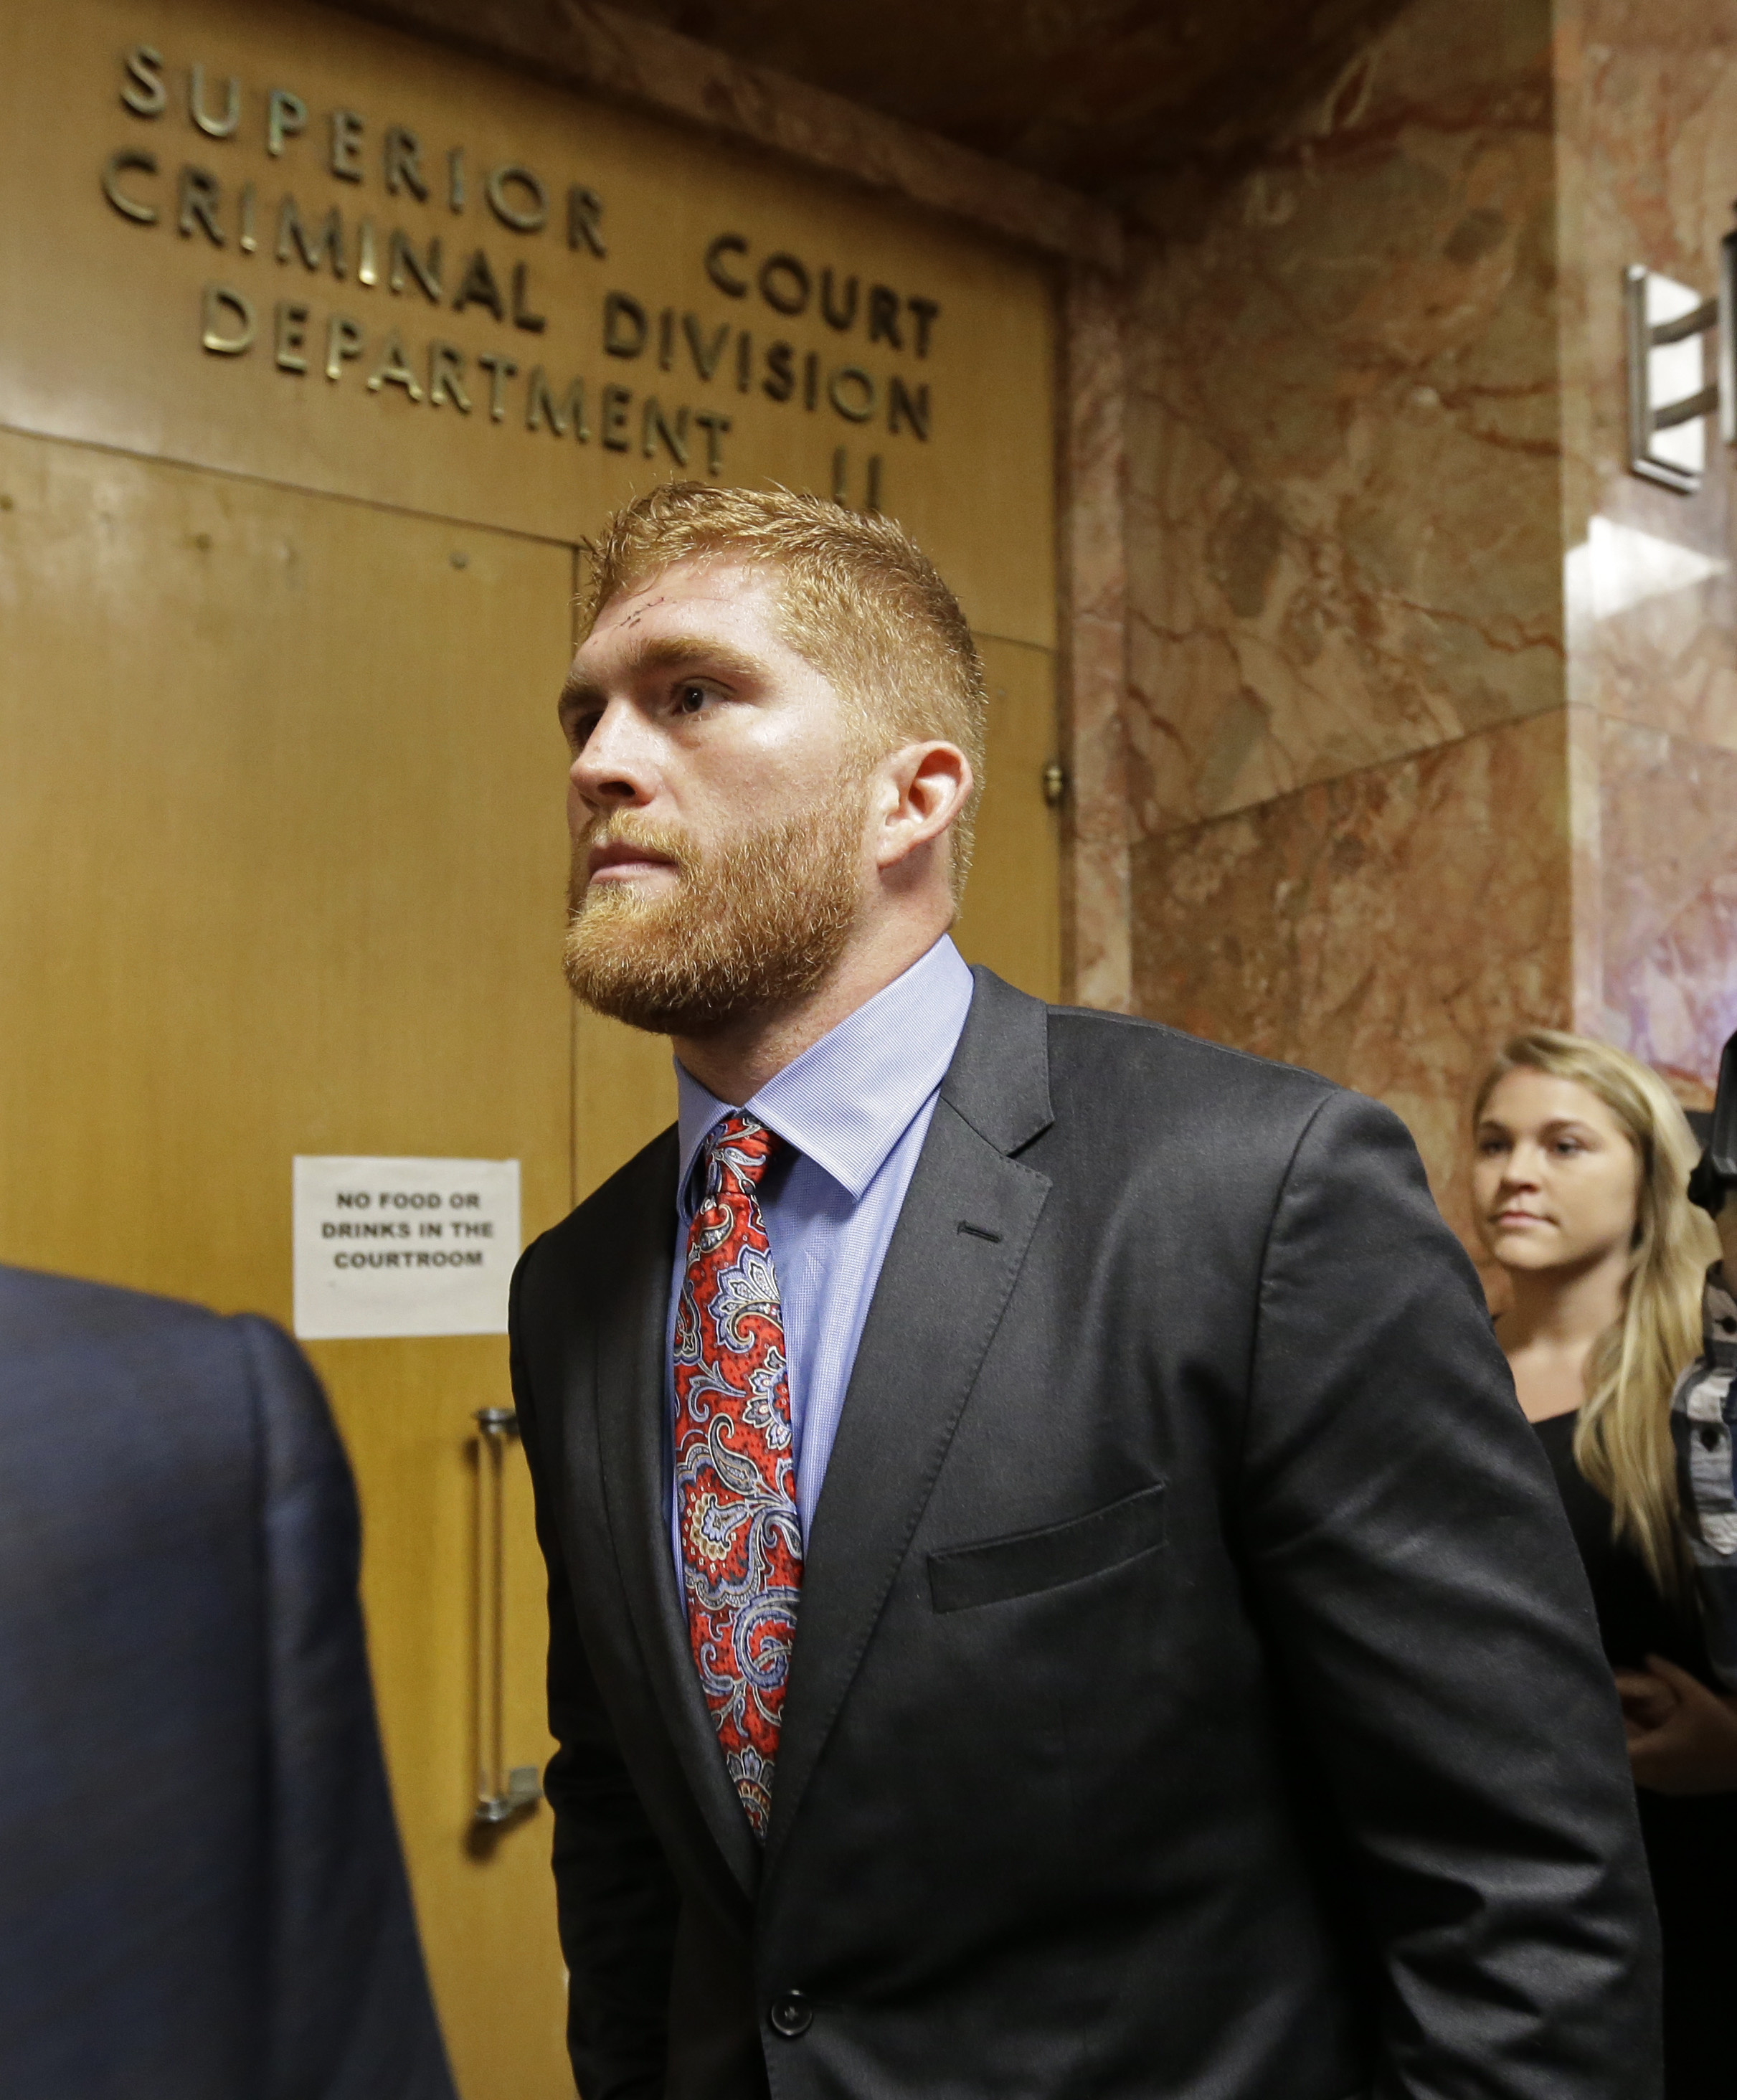 Former San Francisco 49ers' Bruce Miller waits to enter San Francisco County Superior Court, Friday, Sept. 9, 2016, in San Francisco. Prosecutors charged Miller with seven felonies, including assault with a deadly weapon, stemming from Monday's alleged dr